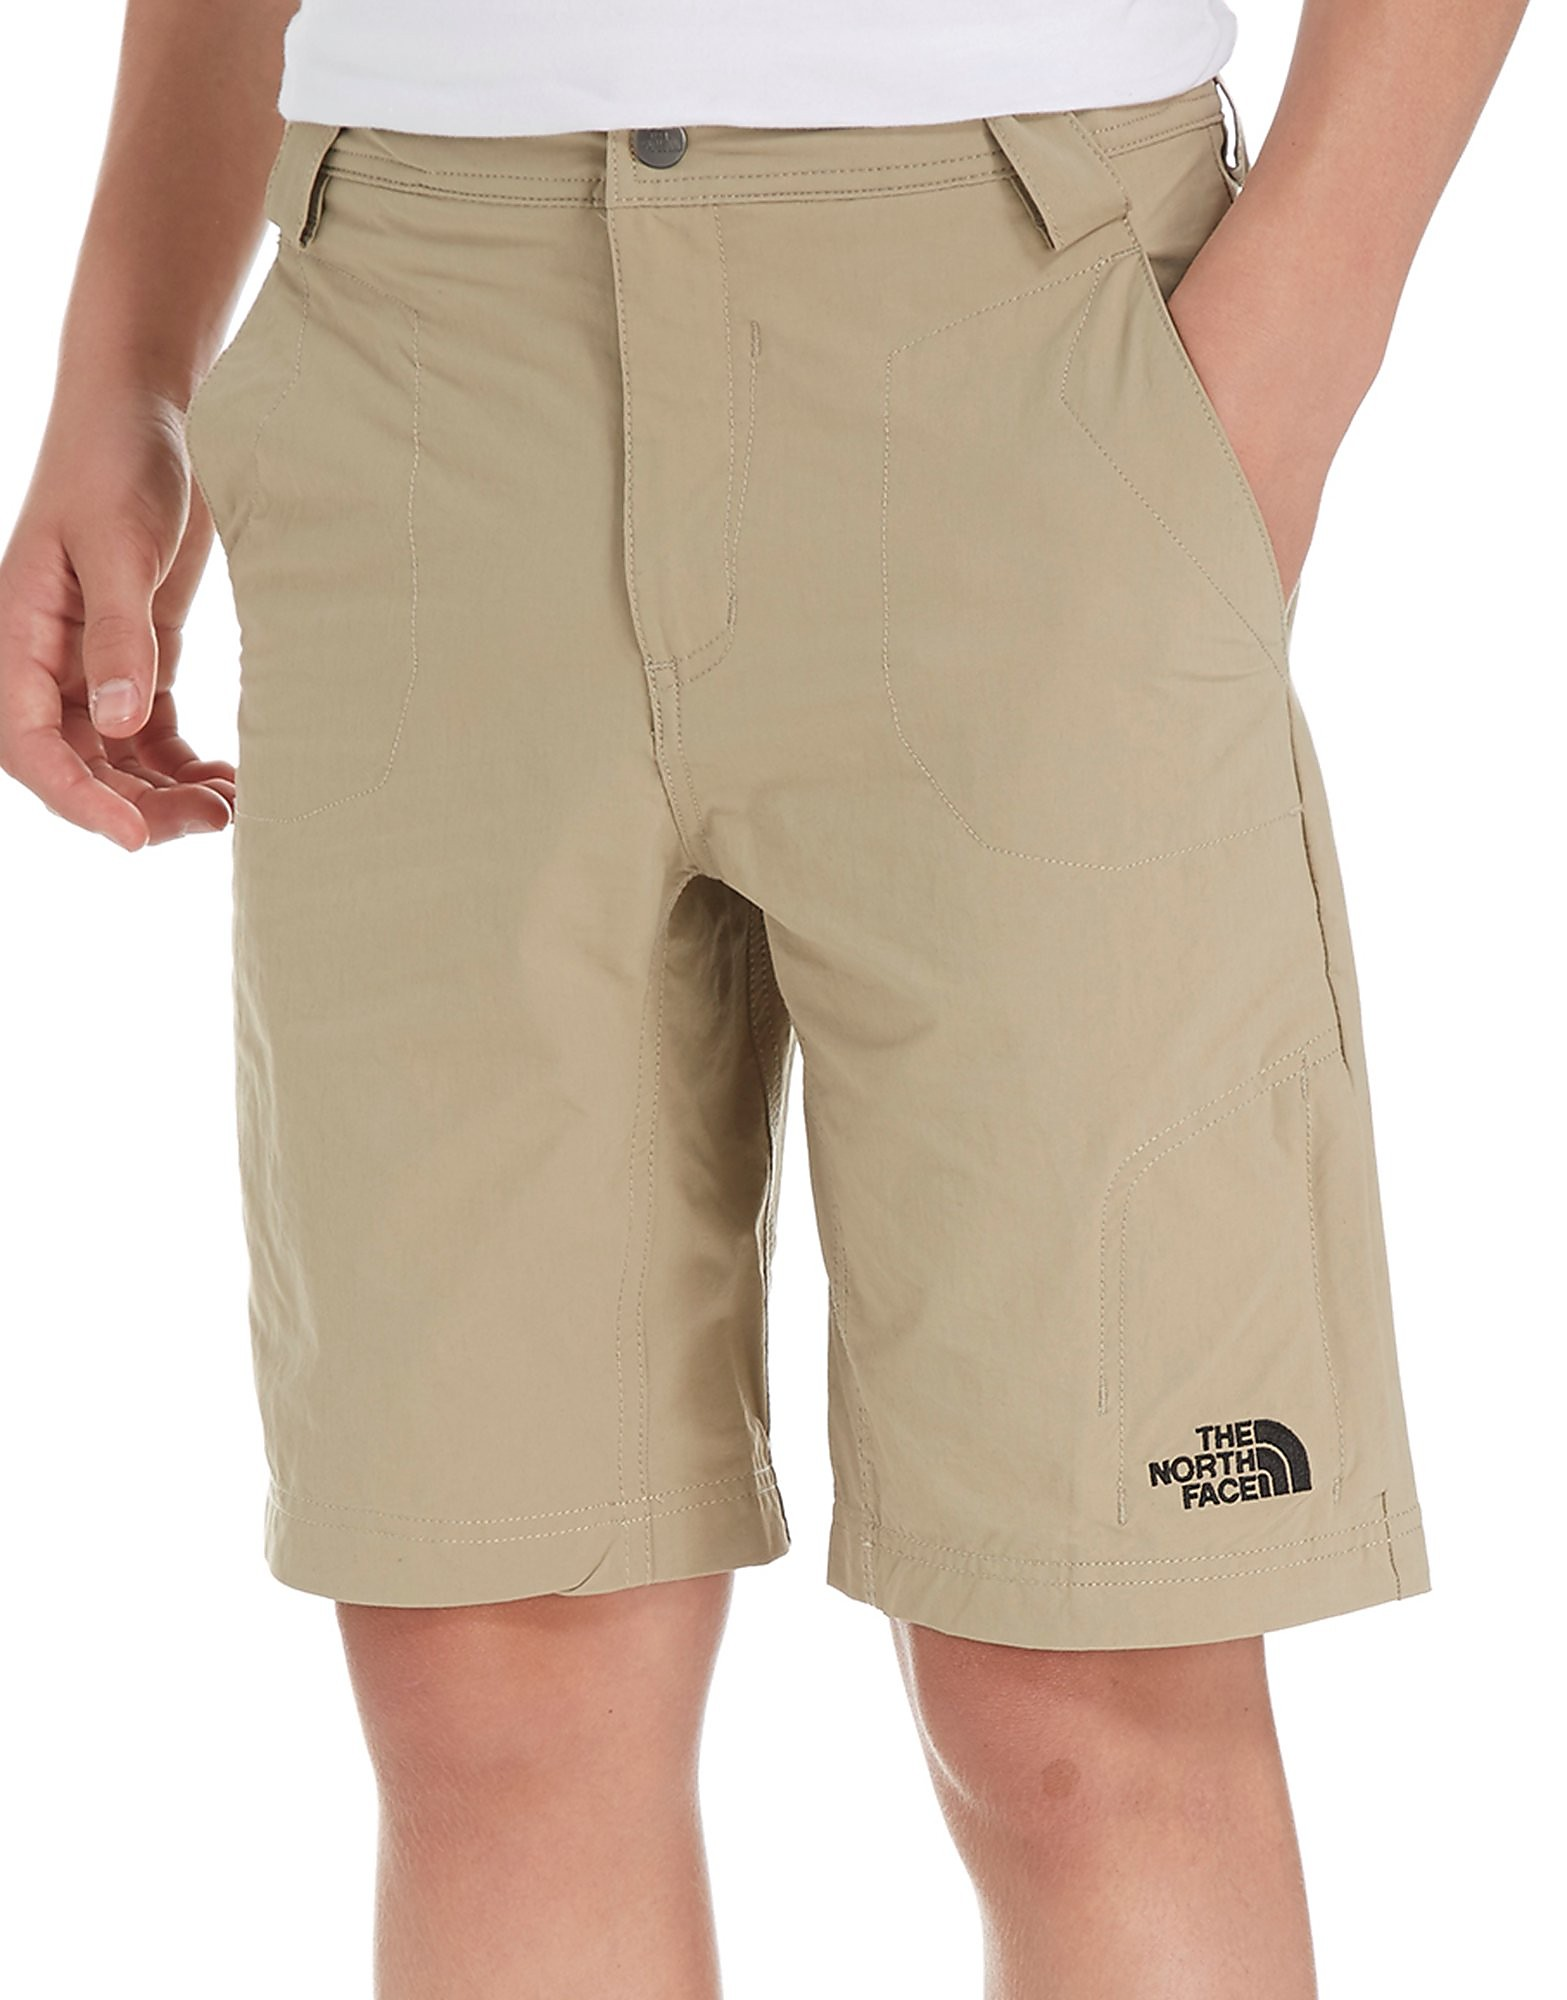 The North Face pantalón corto Explorer júnior